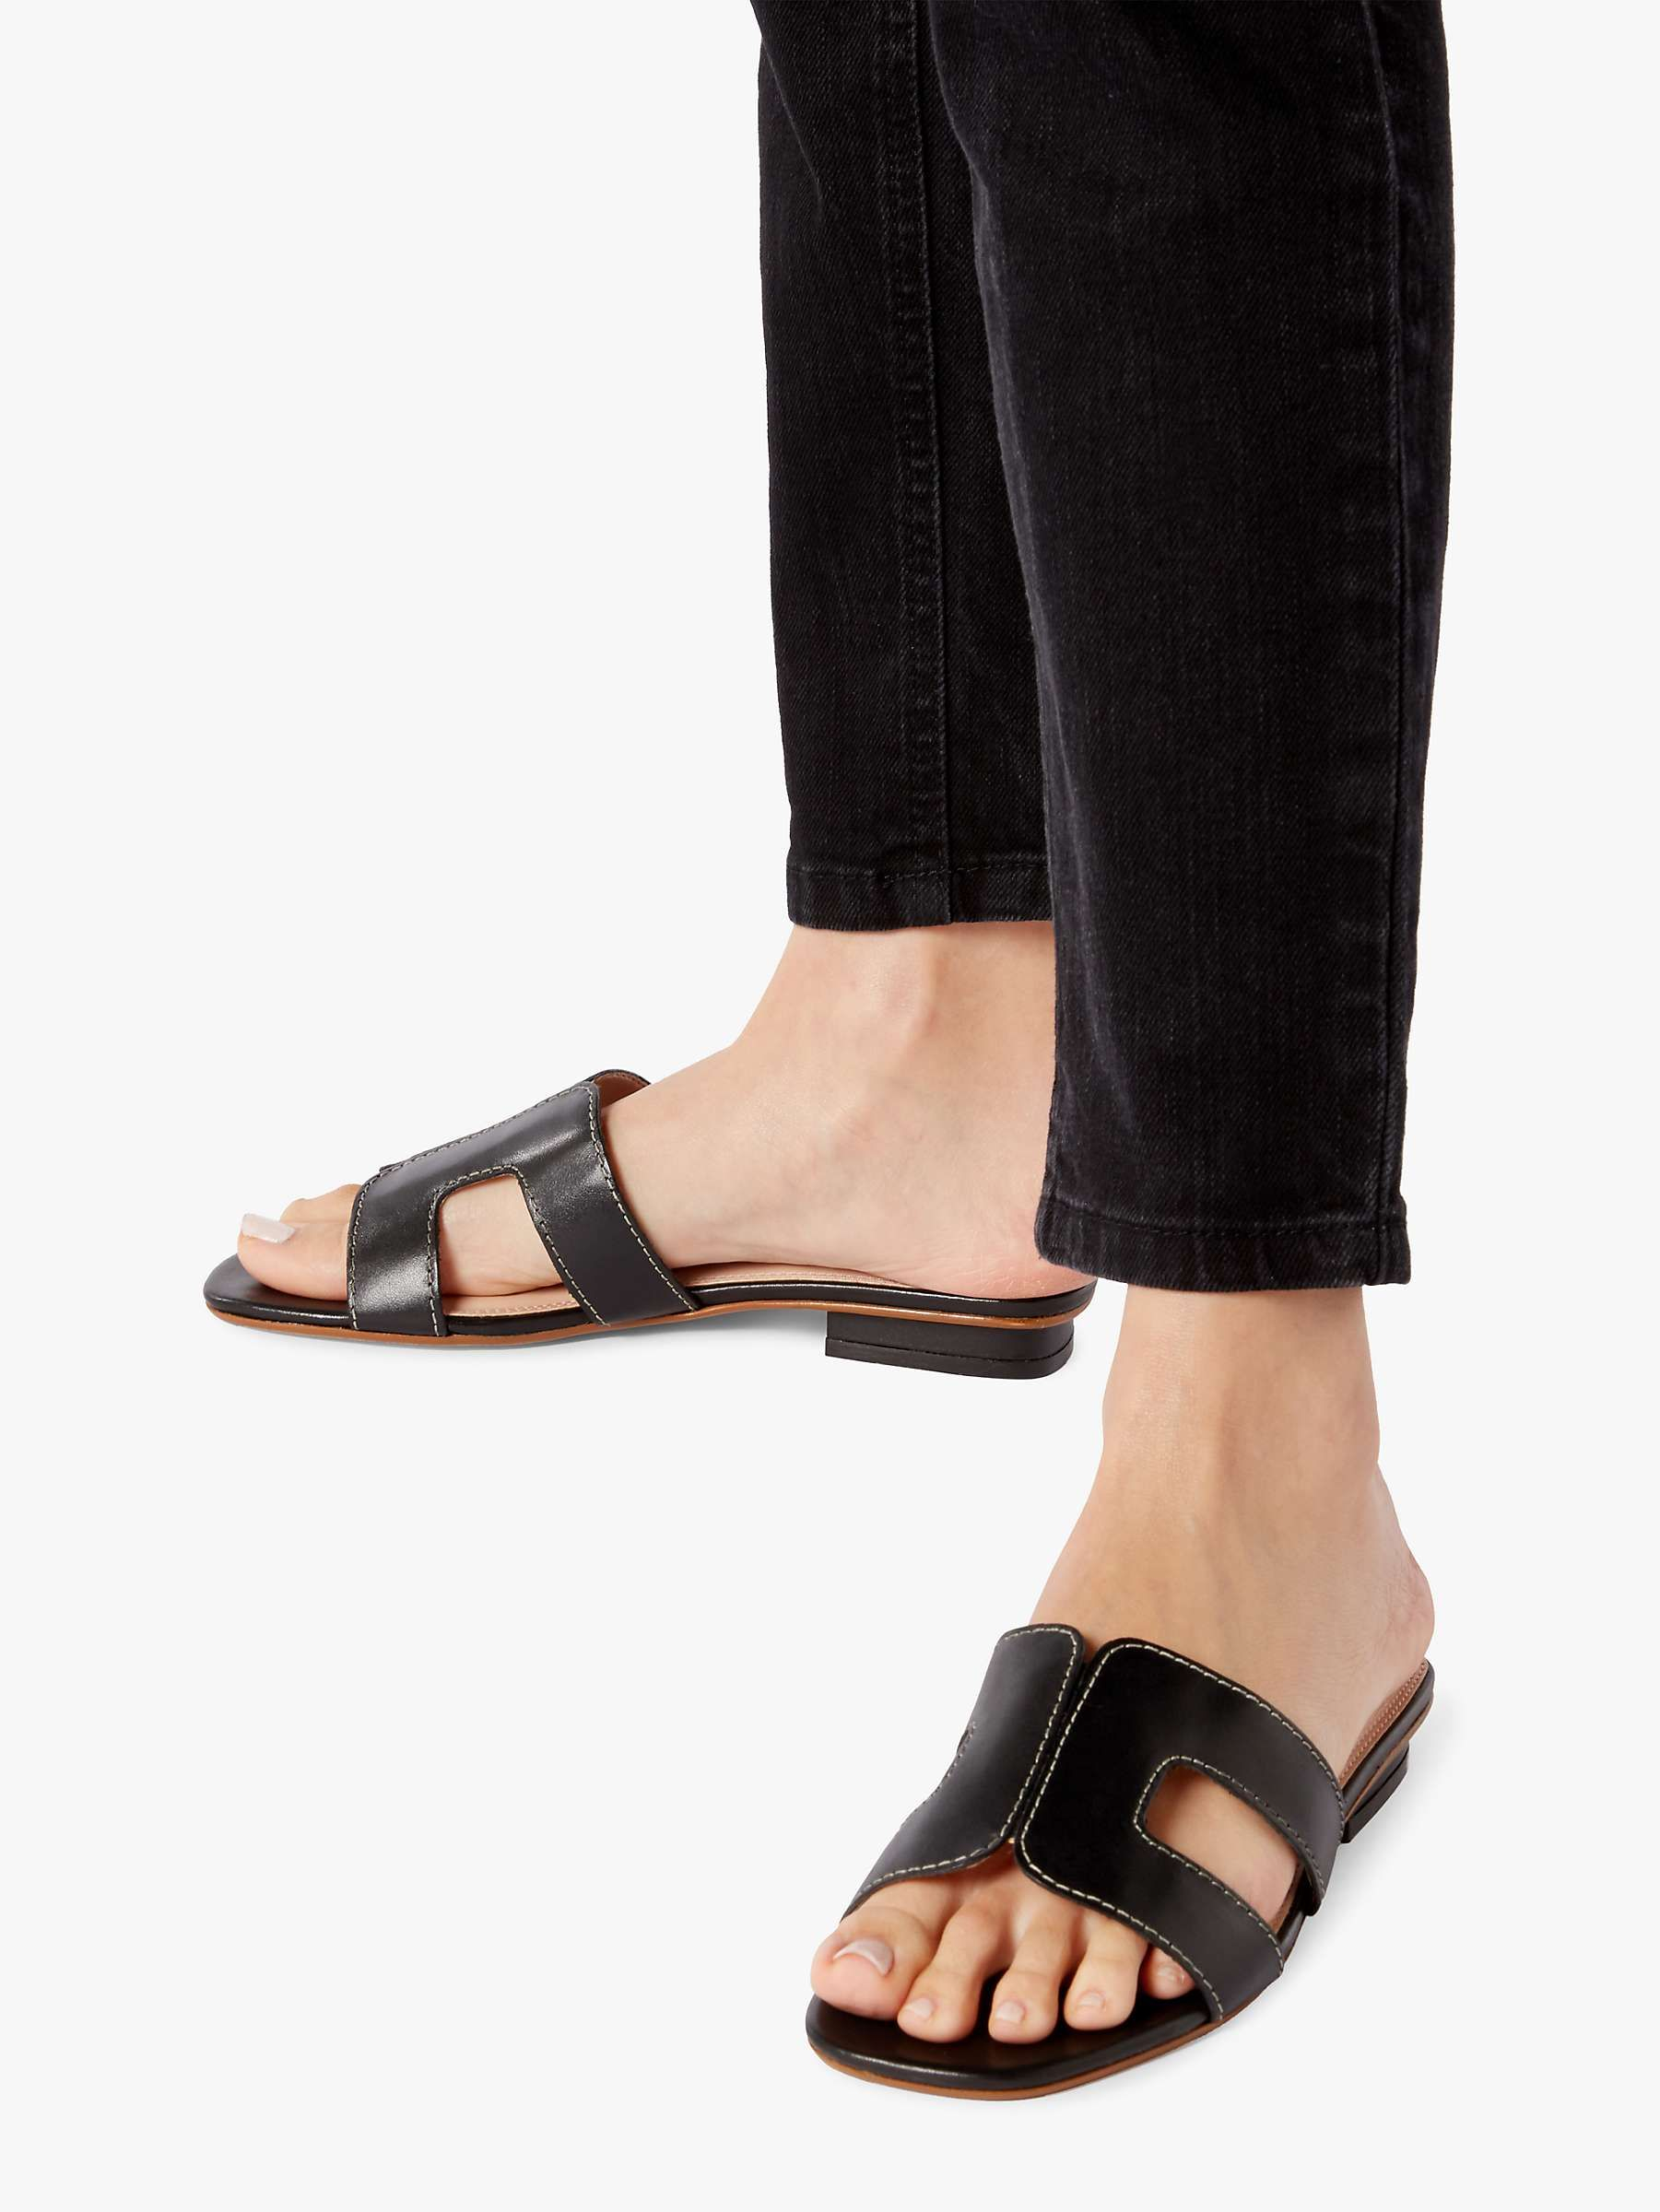 Dune Loupe Flat Slider Sandals, Gold in